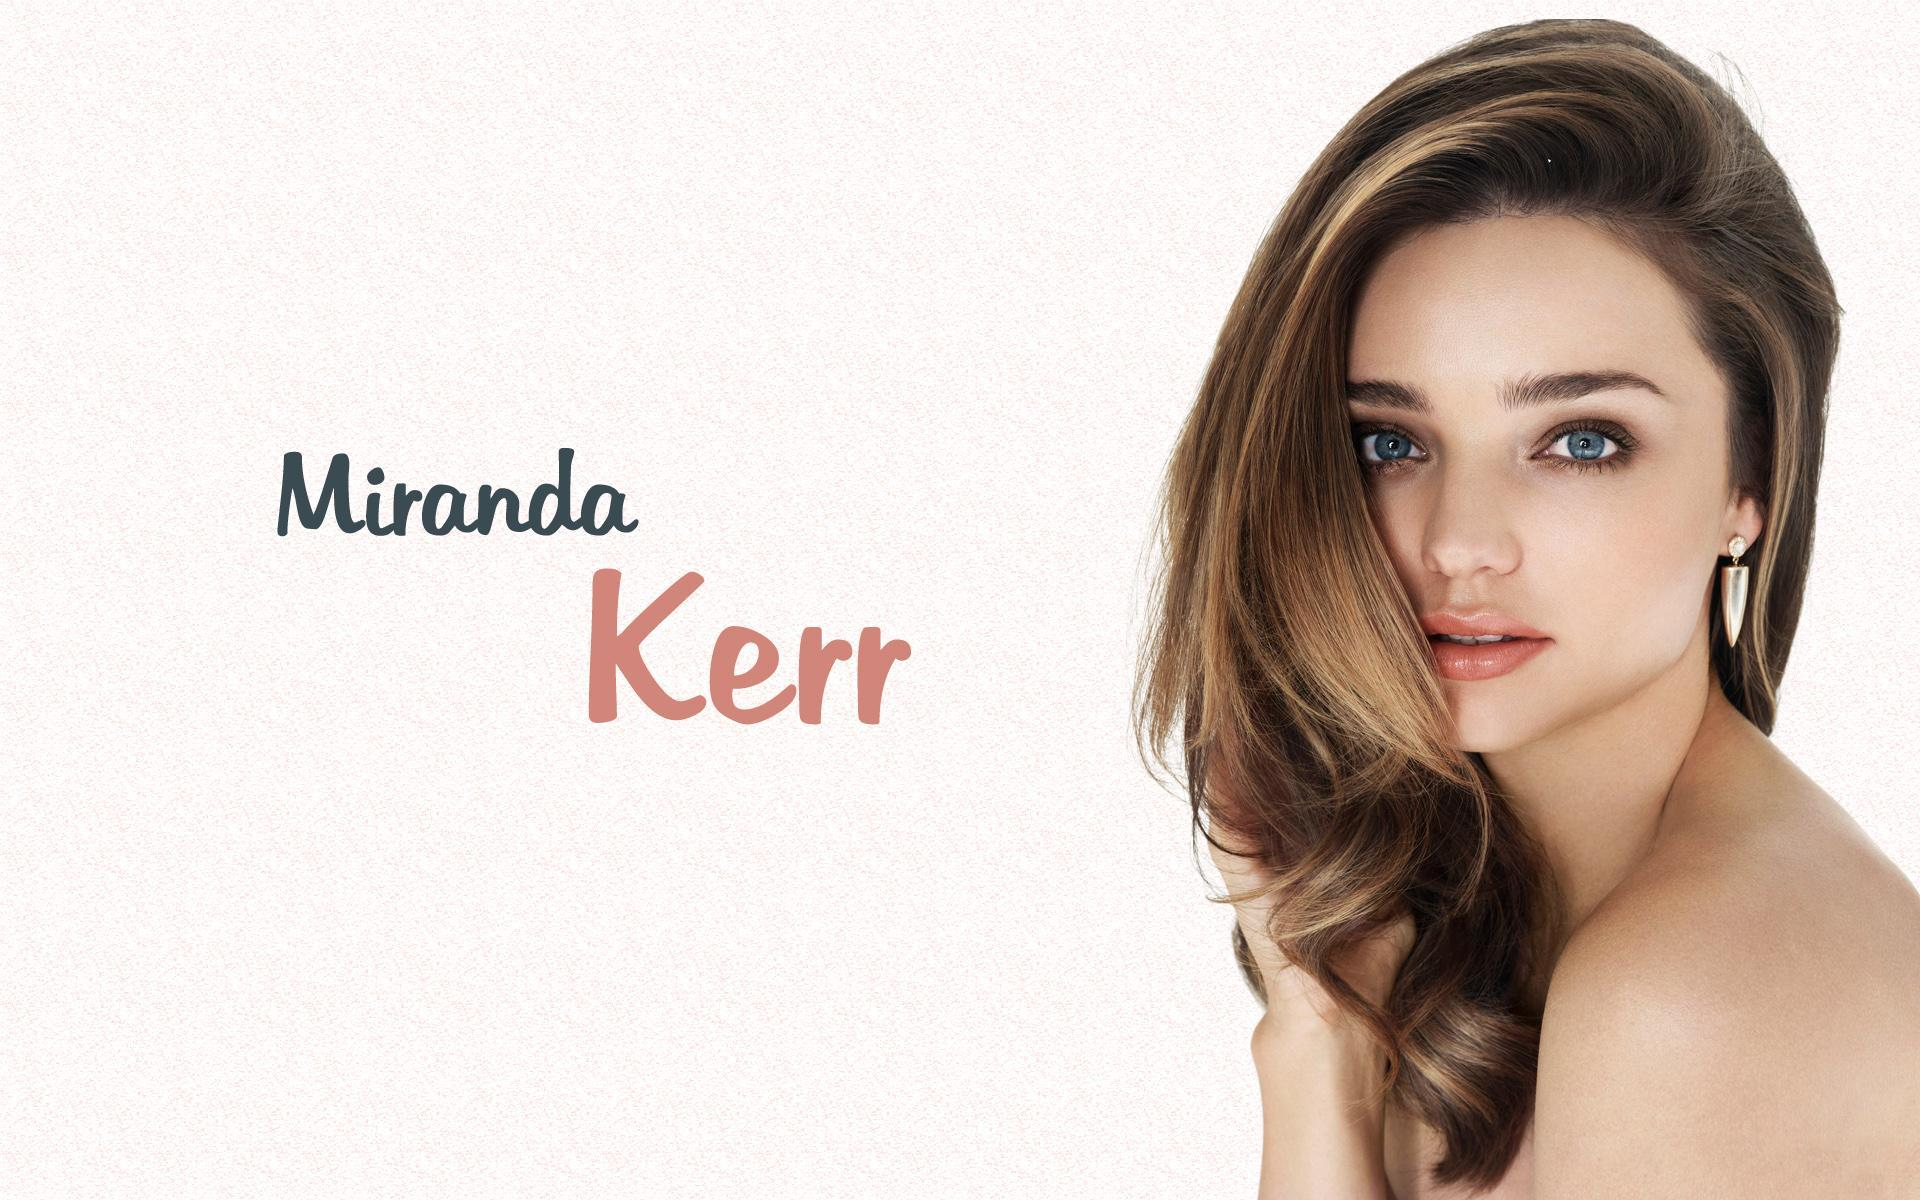 miranda kerr wallpapers 2015 - wallpaper cave